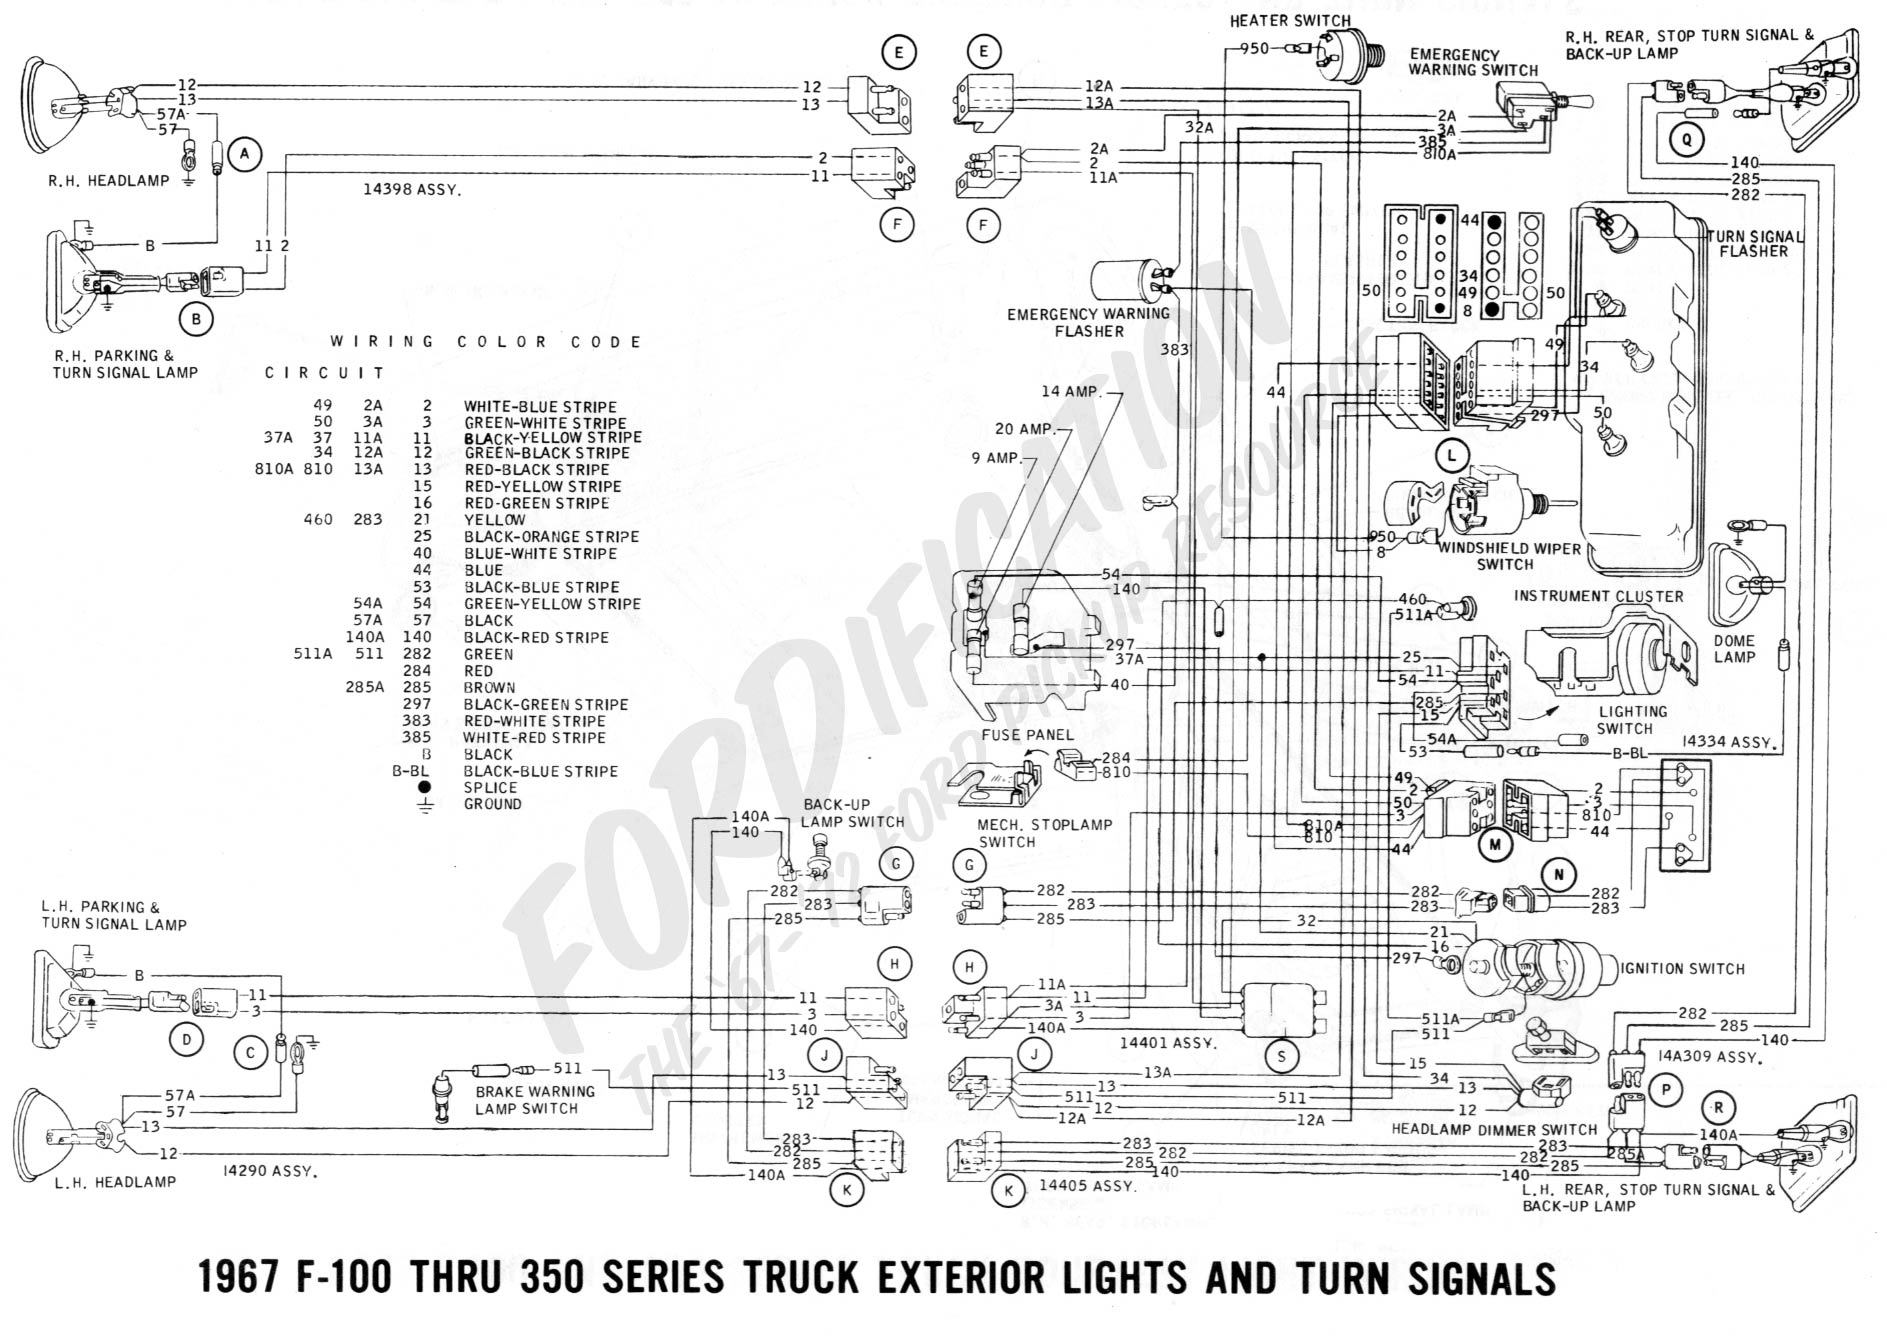 80 1967_exterior_lights_and_turn_signals_page_2_1db6c529c4c9567560e56d6320f993290ba5b803 1967 mustang wiring diagram efcaviation com 66 mustang wiring diagram at eliteediting.co